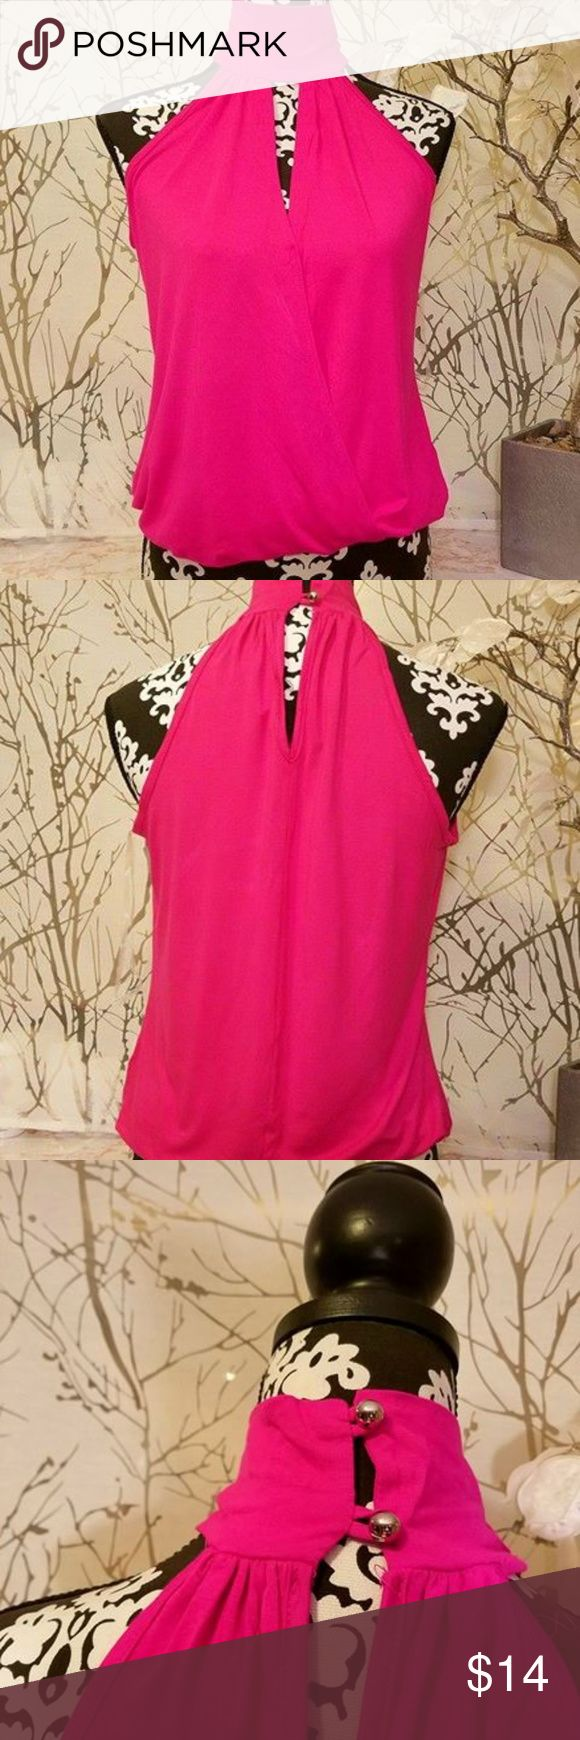 Venus Sleeveless Hot Pink Blouse Cute blouse! Very lightweight, comfortable. Size small. Brand new, never worn. VENUS Tops Blouses